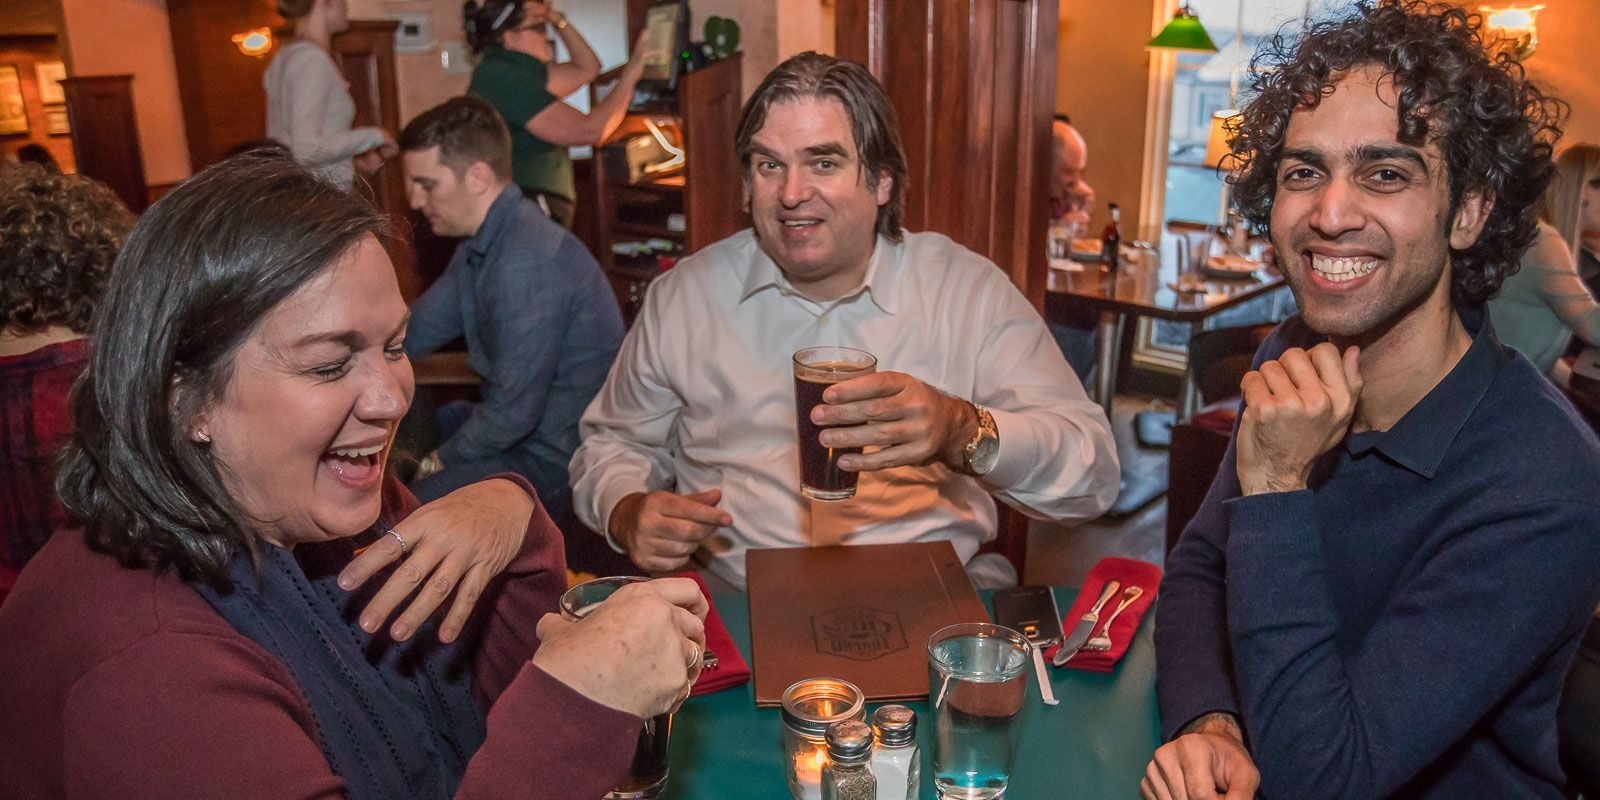 Smiling faces in the Glen Park Tavern on the first day of Local Restaurant Week.